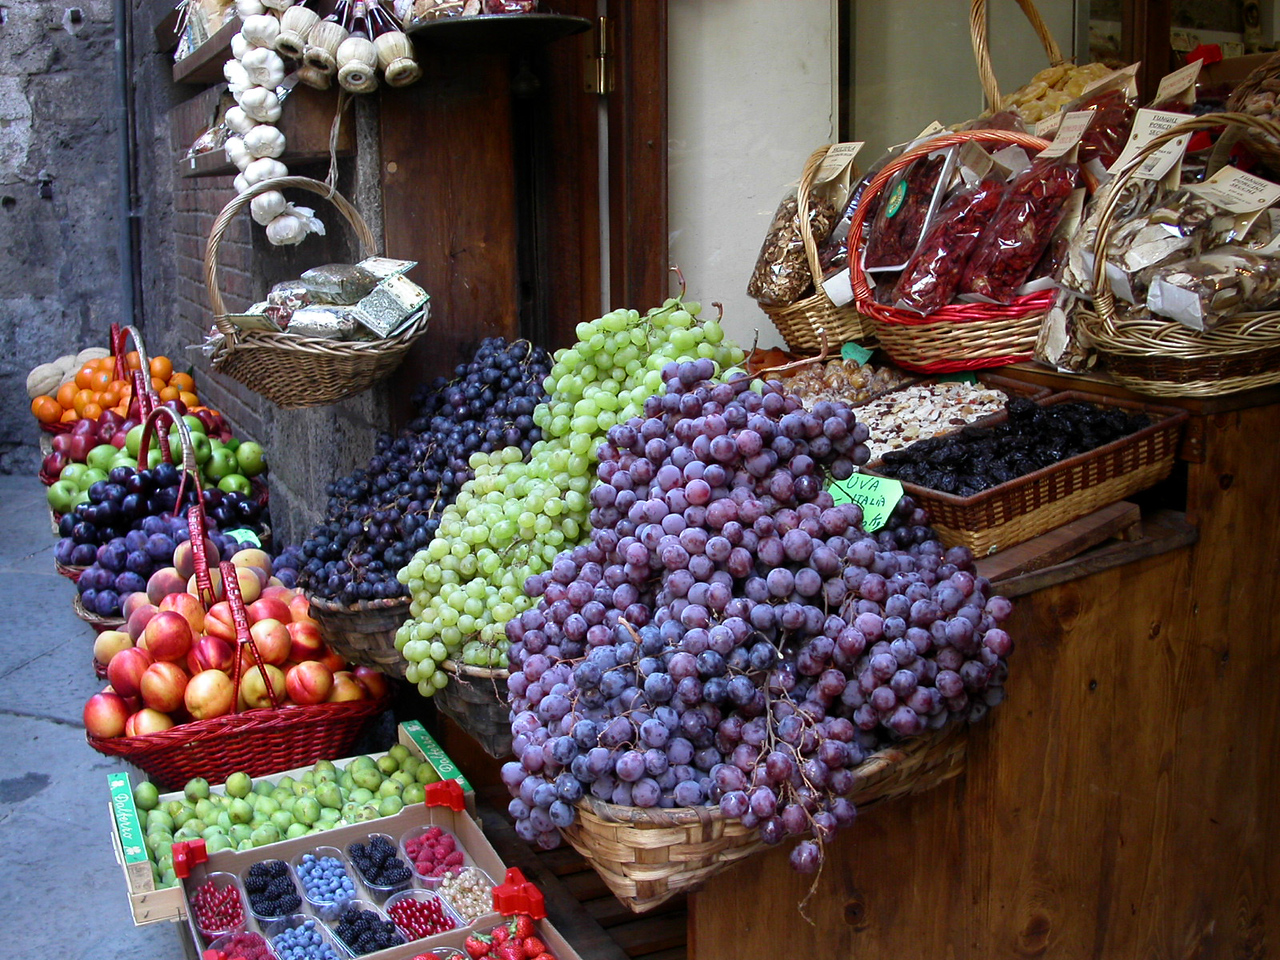 8. Fruit Stand in Tuscany